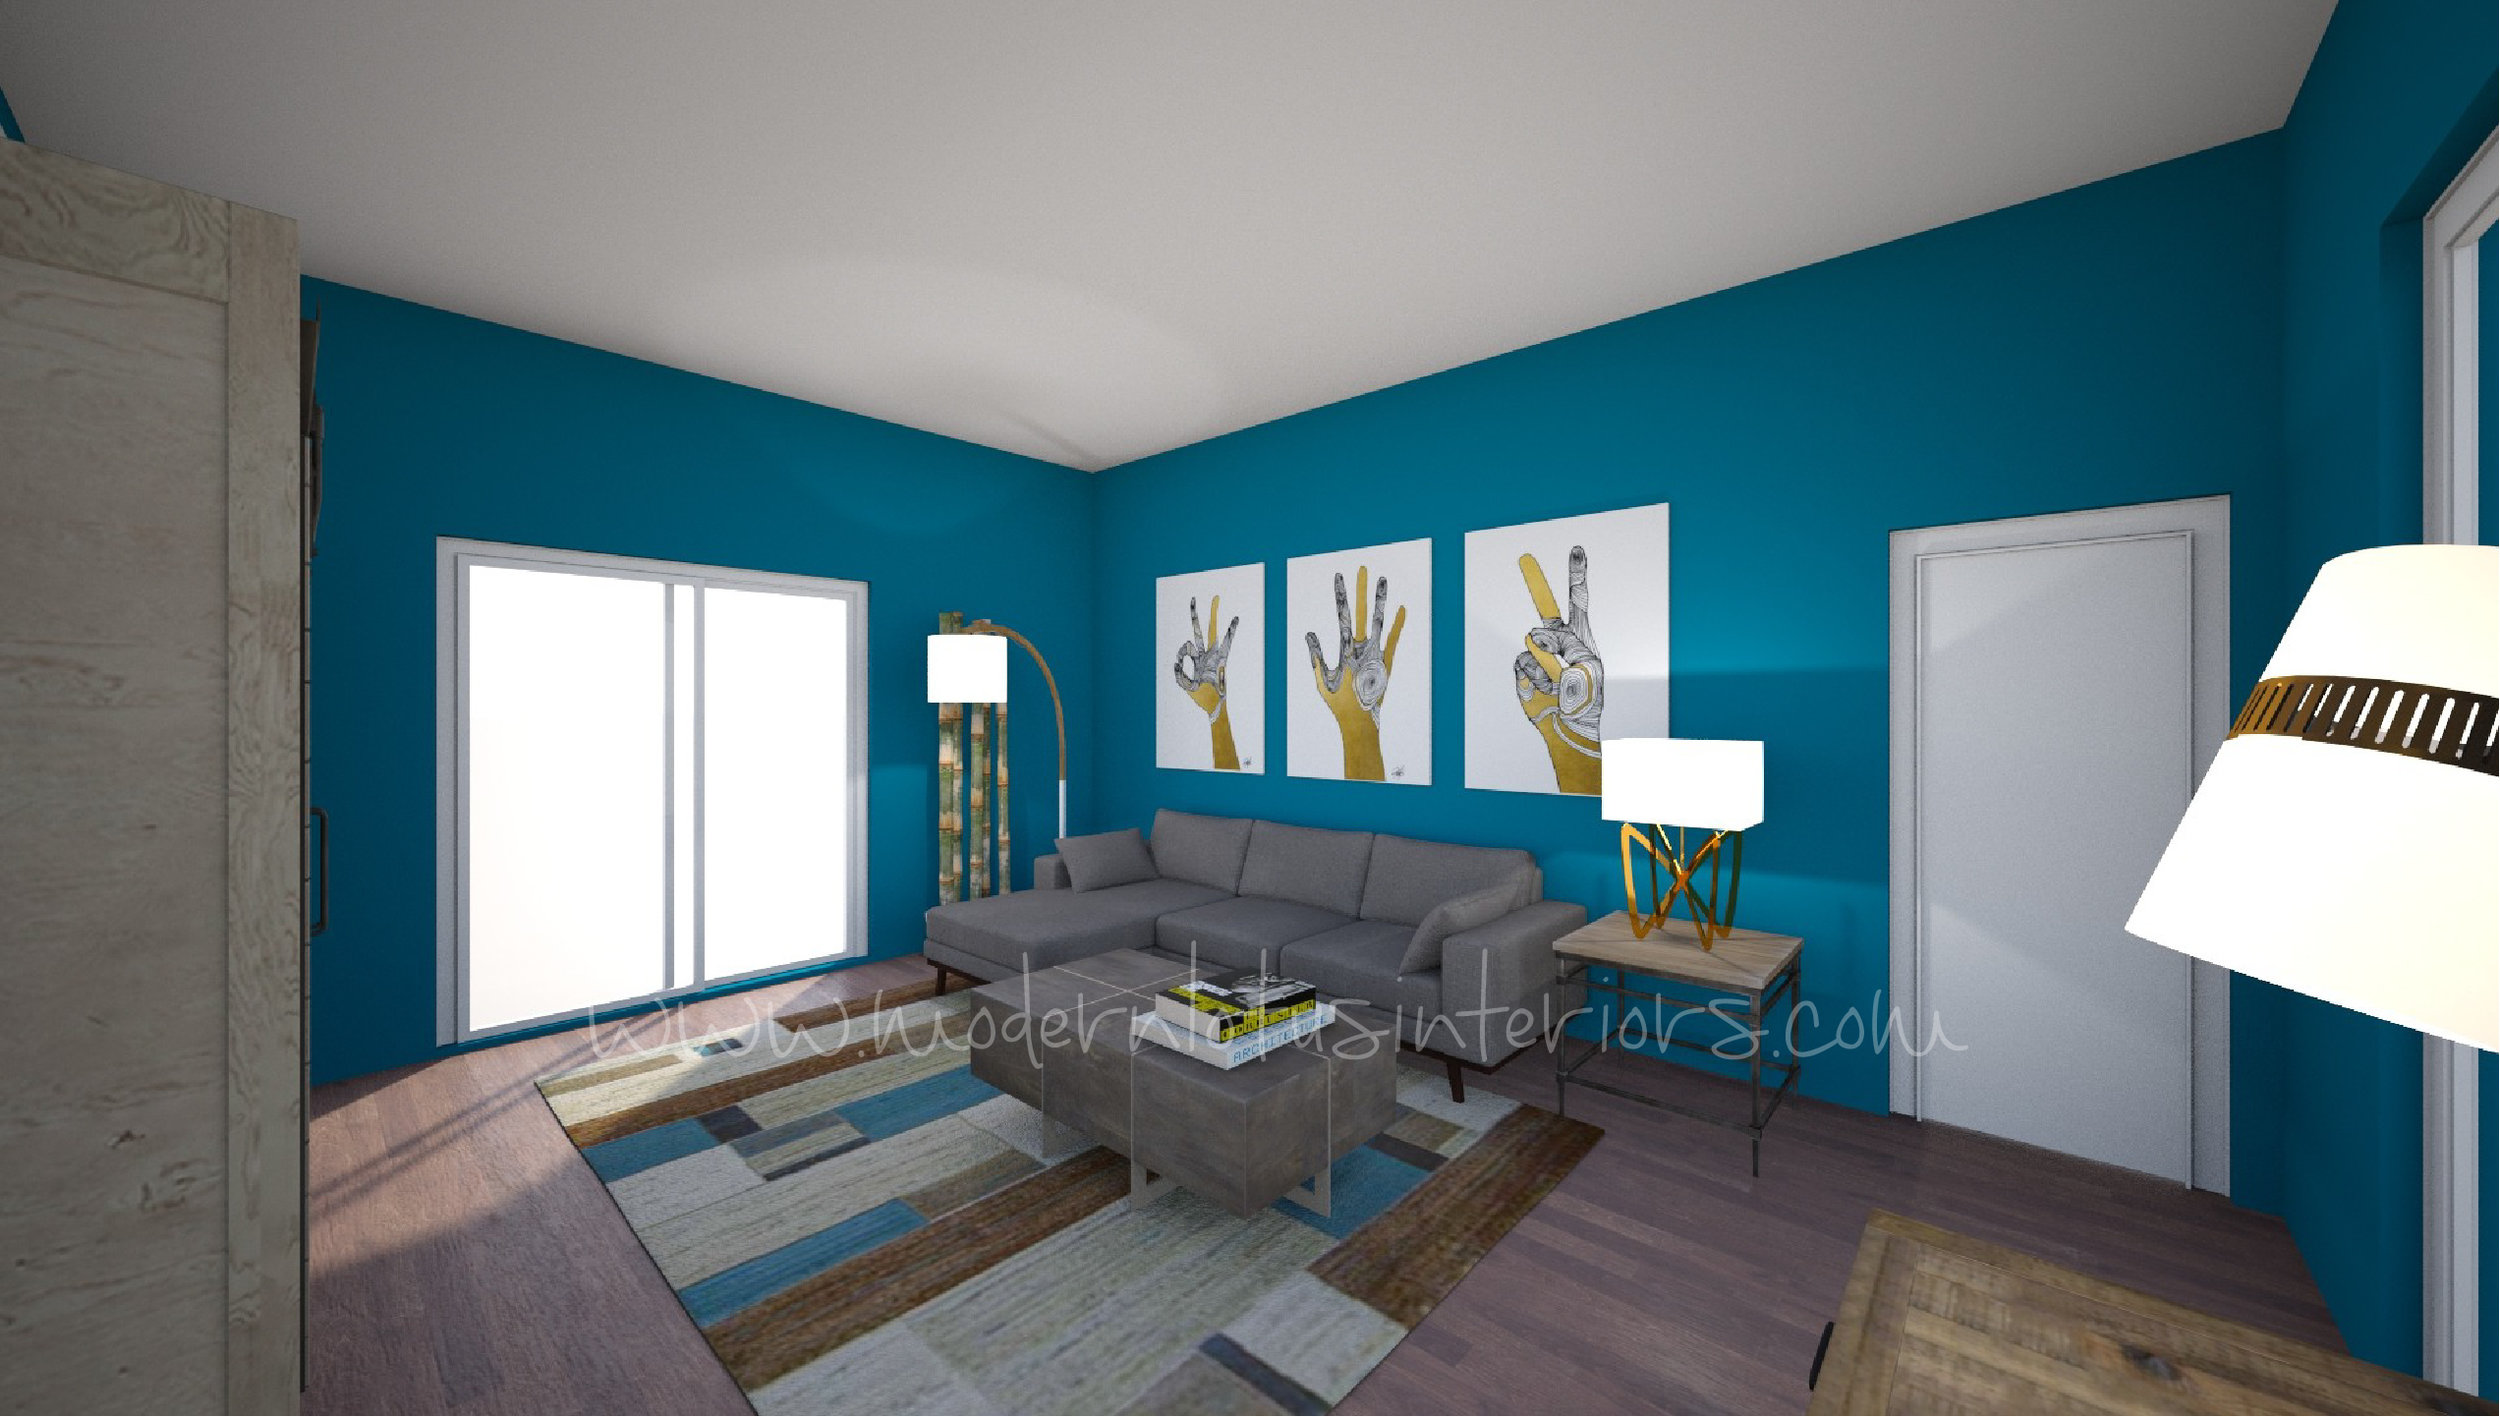 3D Drawing for a living room refresh in irvine, ca